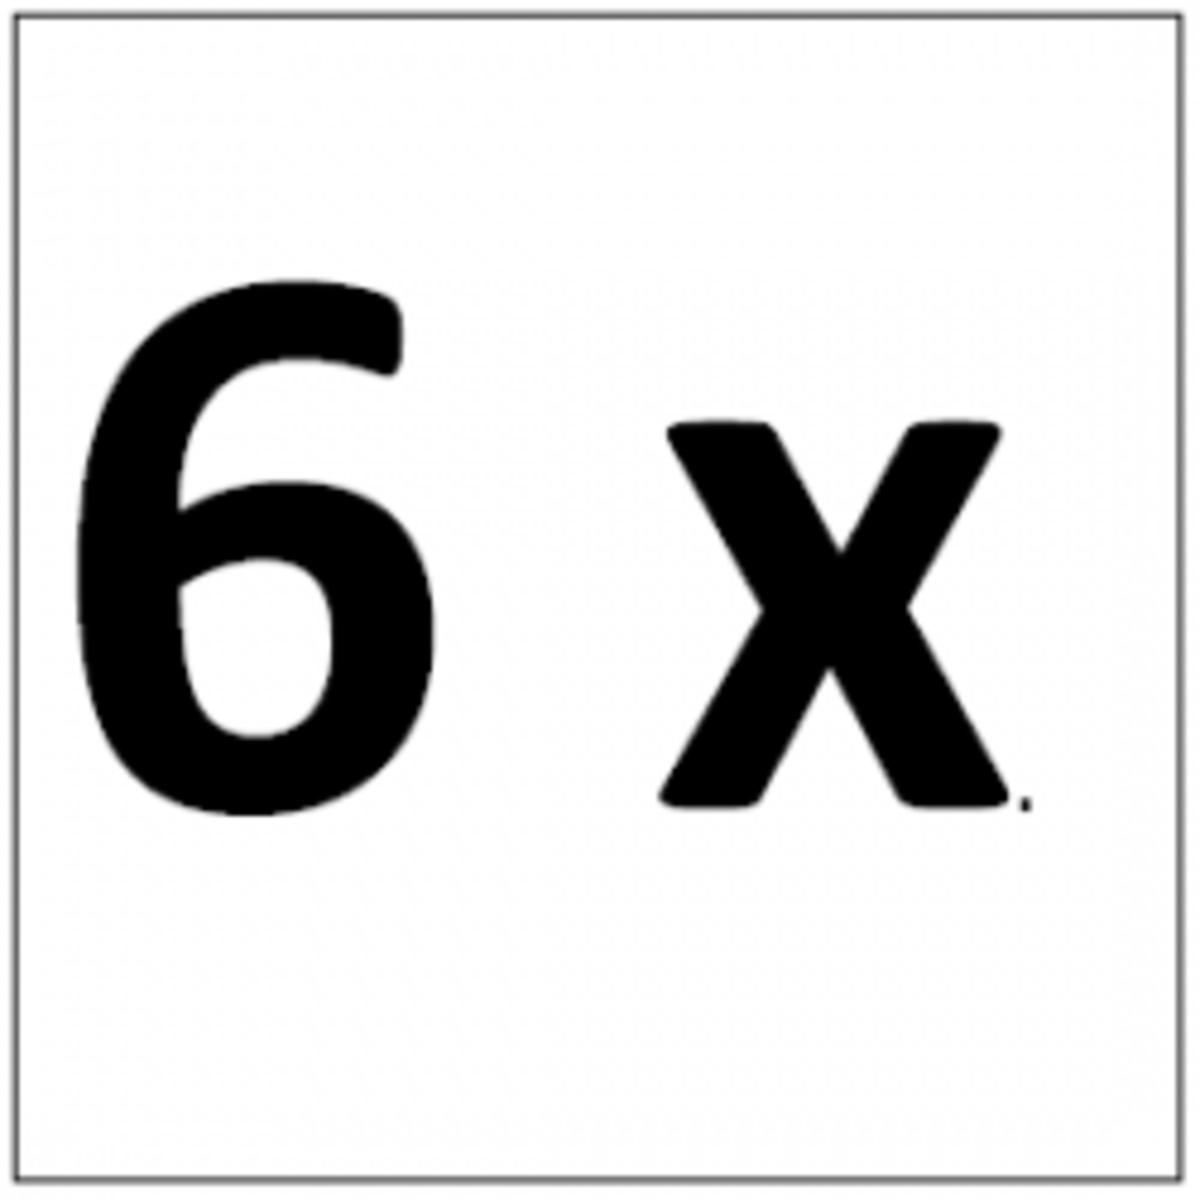 Six Times Table